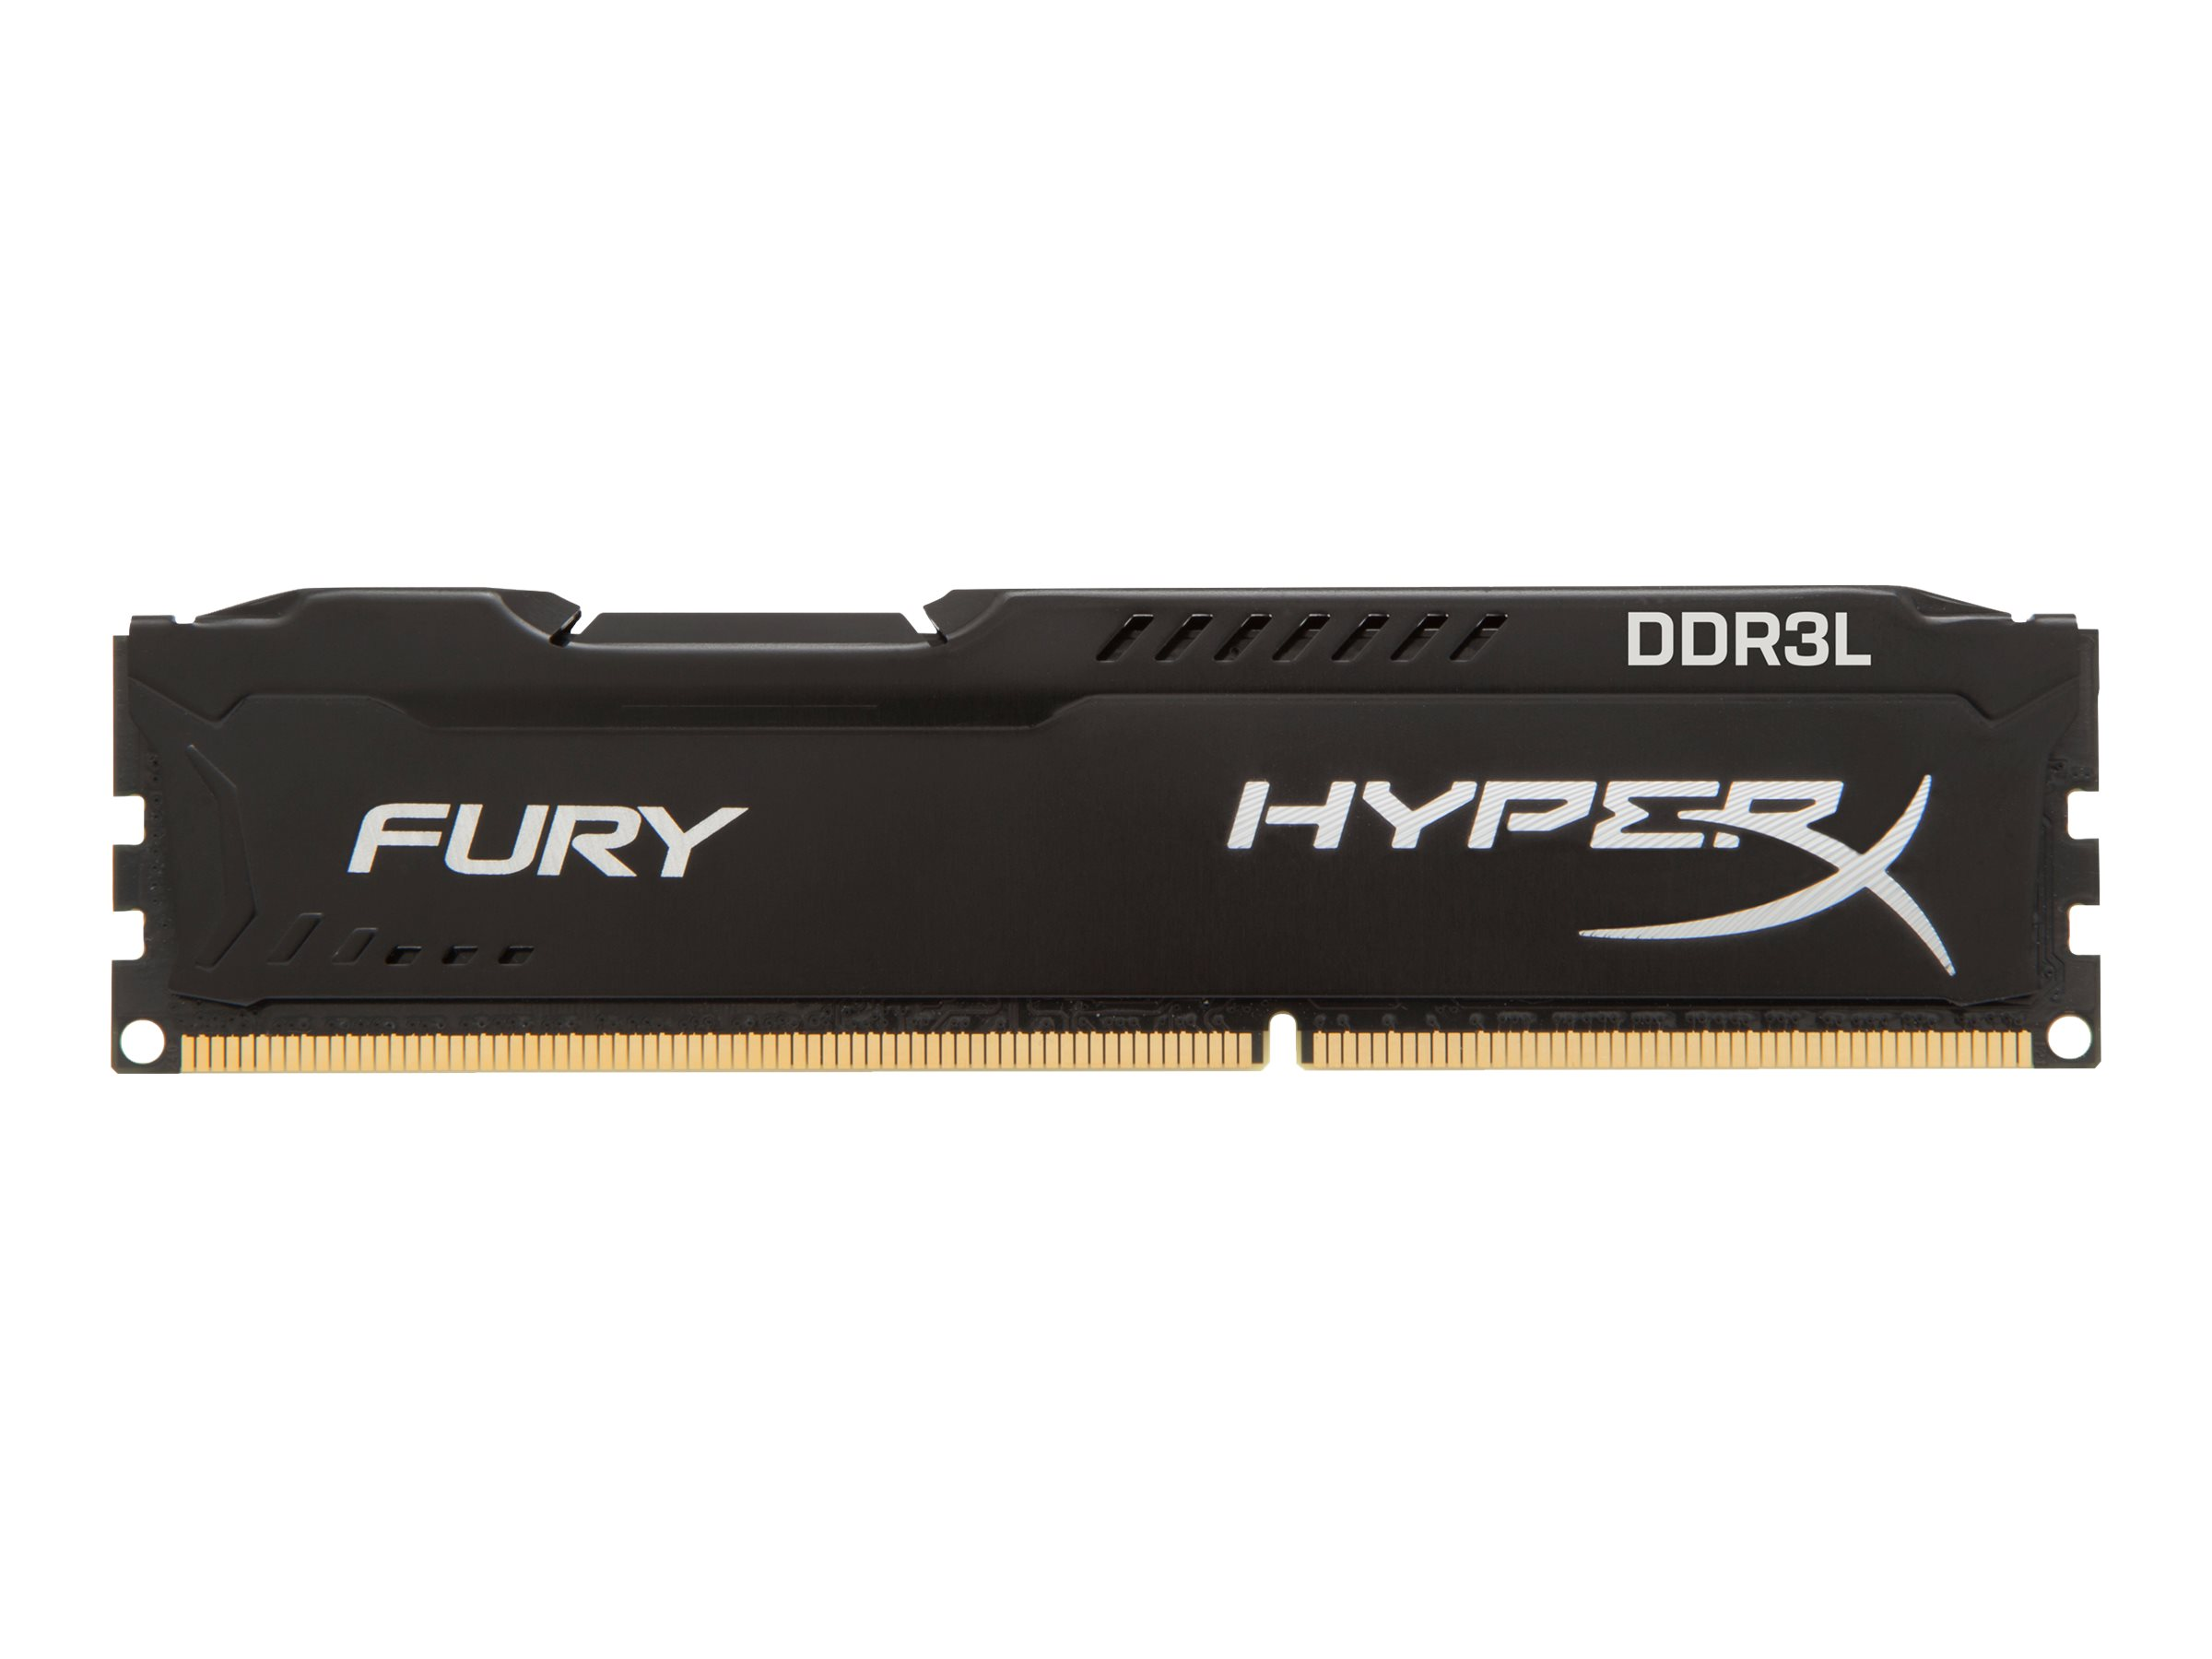 HyperX FURY - DDR3L - 16 GB: 2 x 8 GB - DIMM 240-PIN - 1600 MHz / PC3L-12800 - CL10